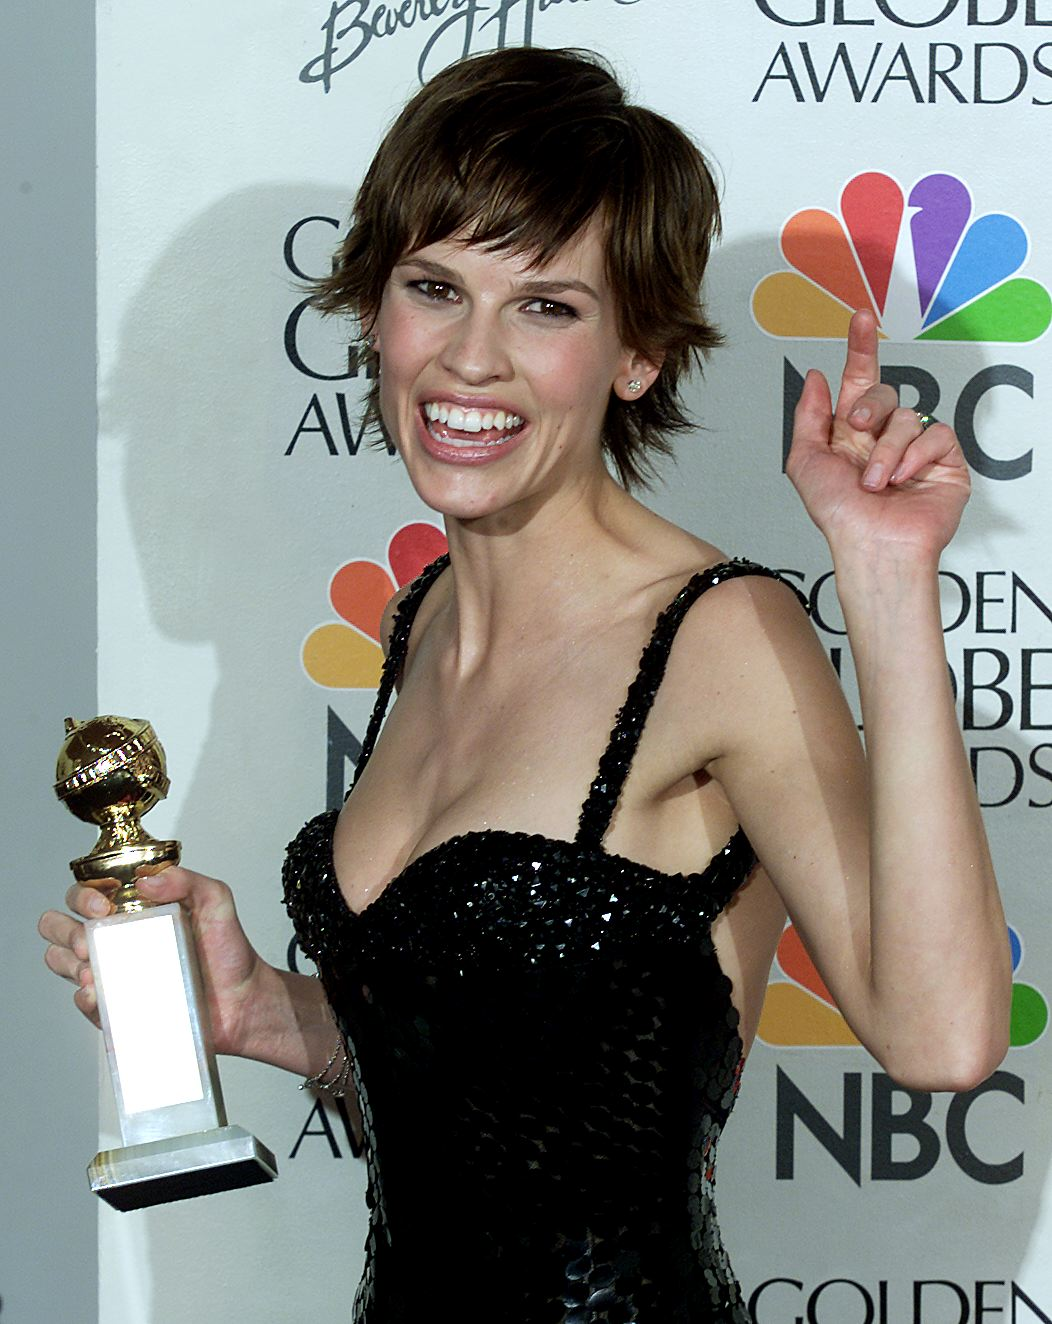 Hilary Swank at an event for Boys Don't Cry (1999)